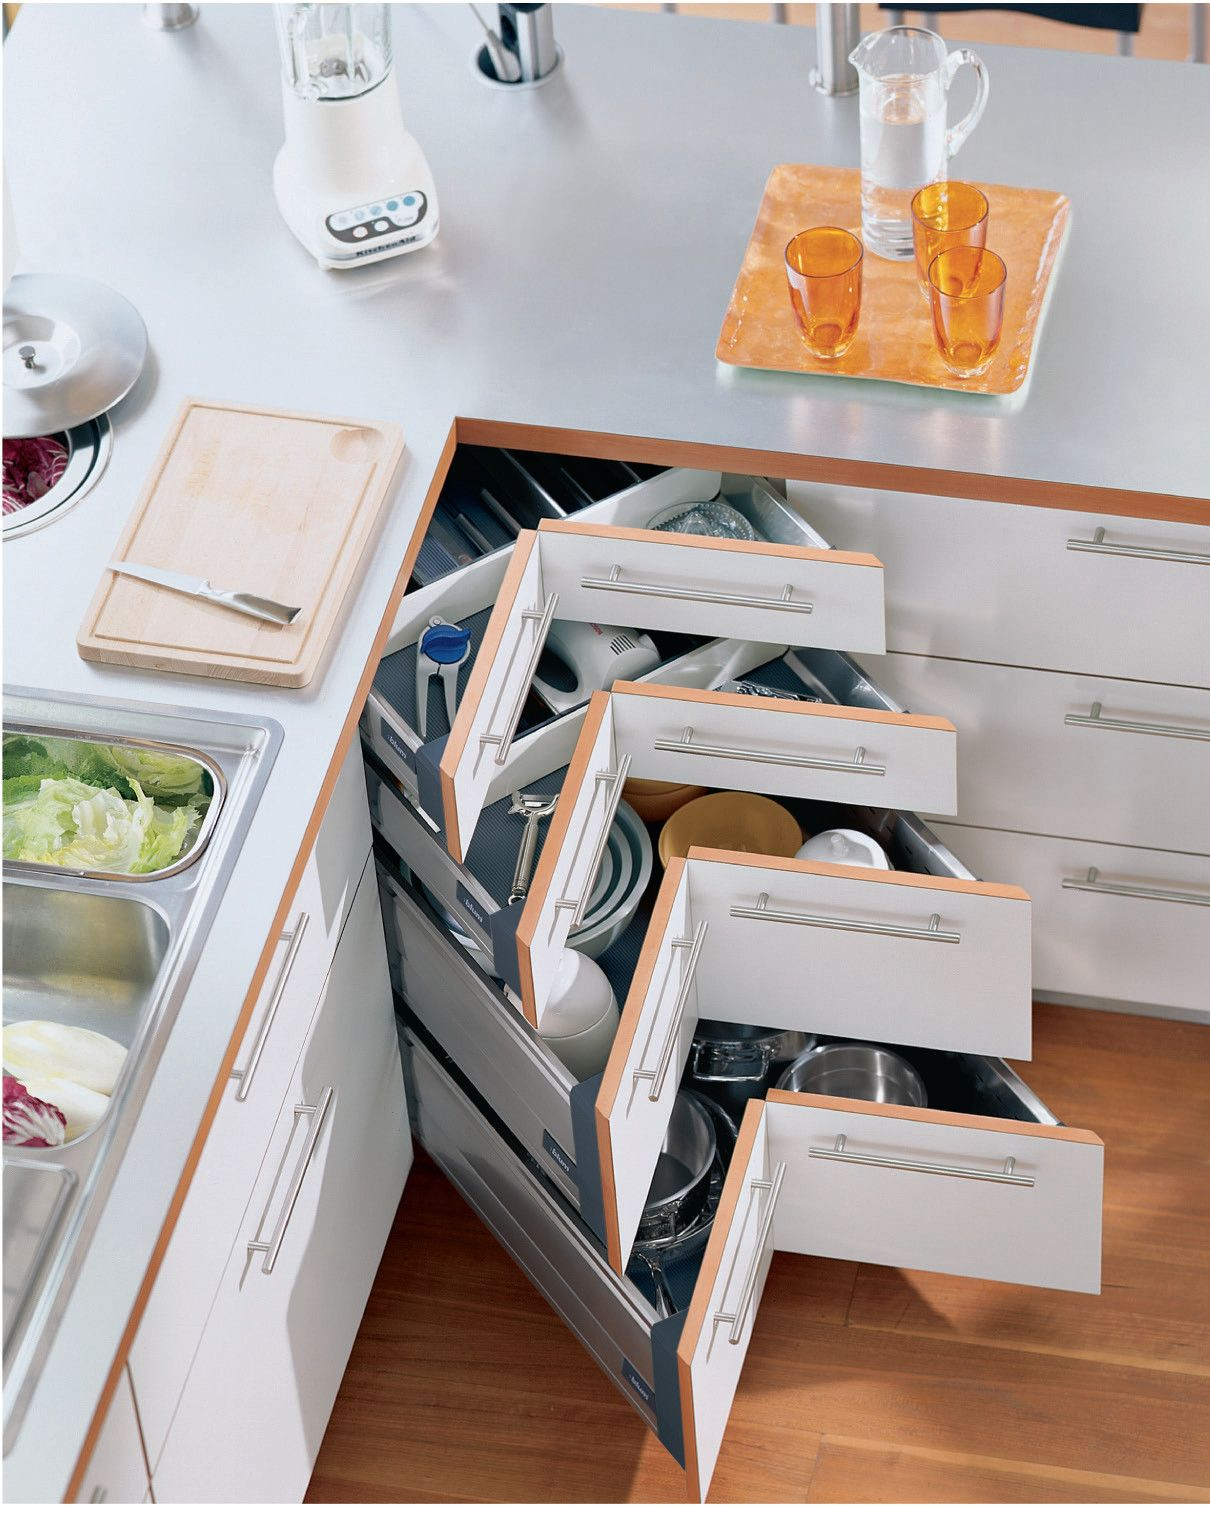 Interesting storage ideas corner drawers kitchen solution decor aid also top fabulous  mag interior design rh pinterest